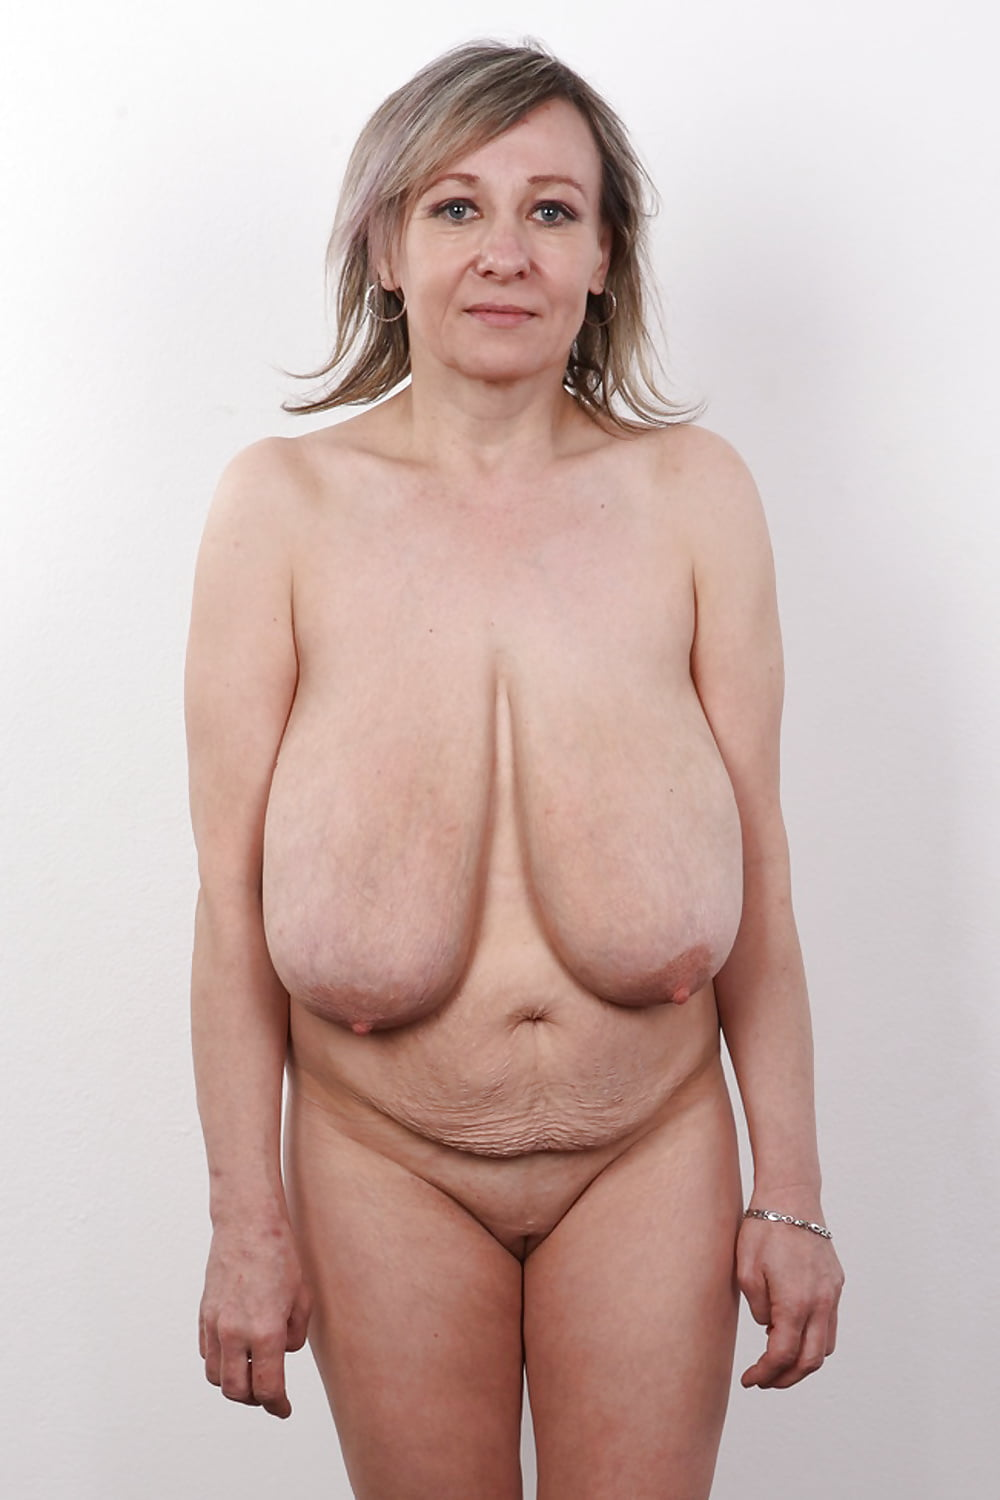 Can saggy breasts be lifted naturally